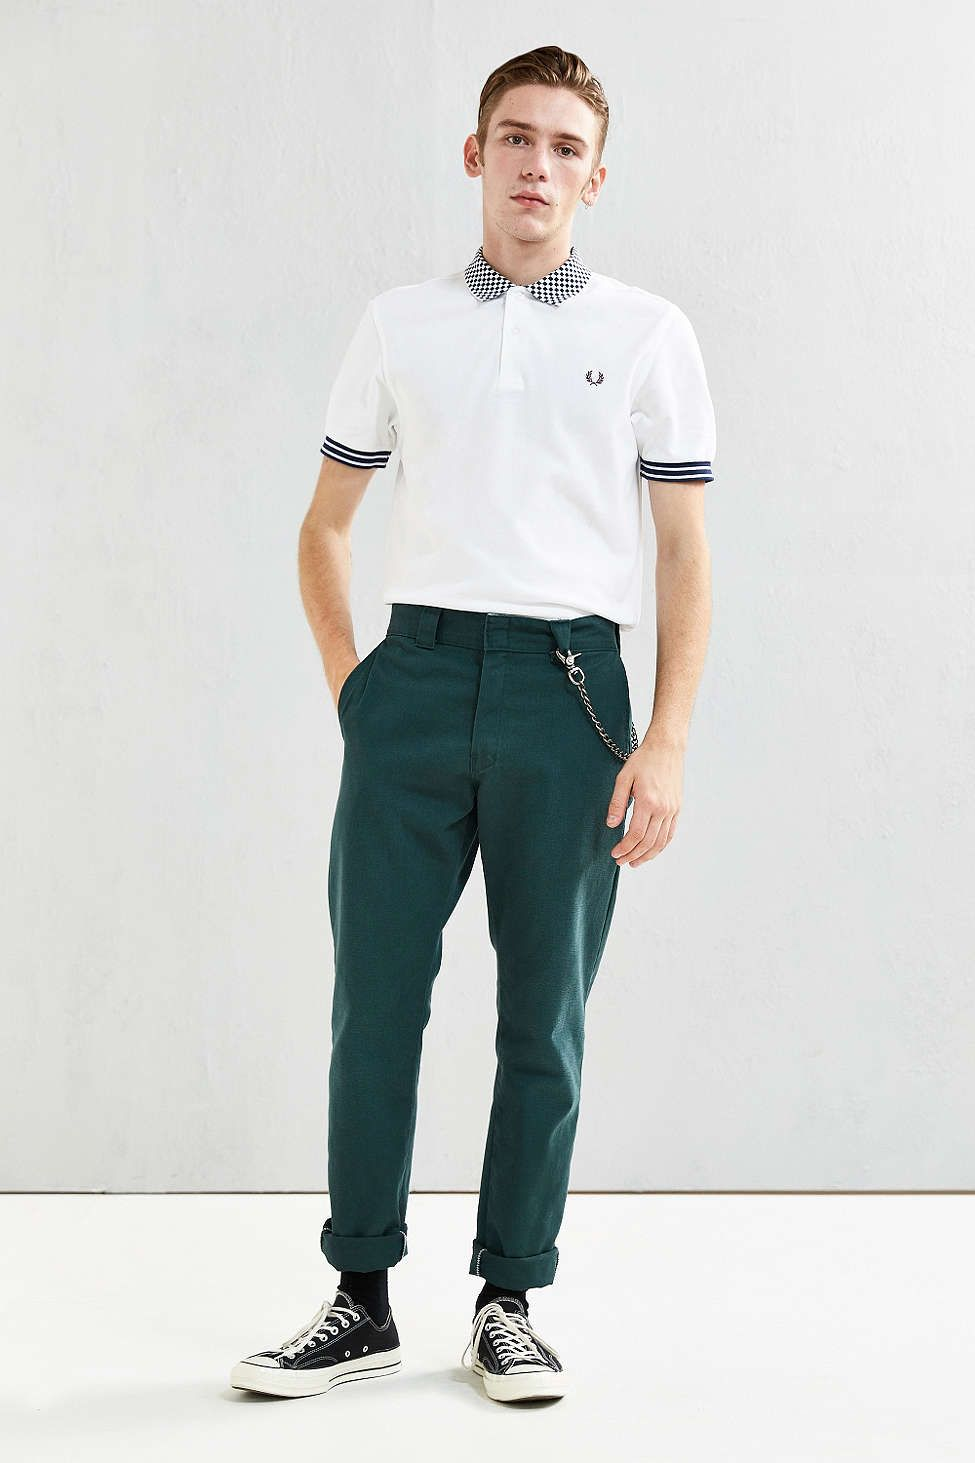 75a73244 Fred Perry Checkerboard Polo Shirt - Urban Outfitters Fred Perry Polo, Just  For Men,